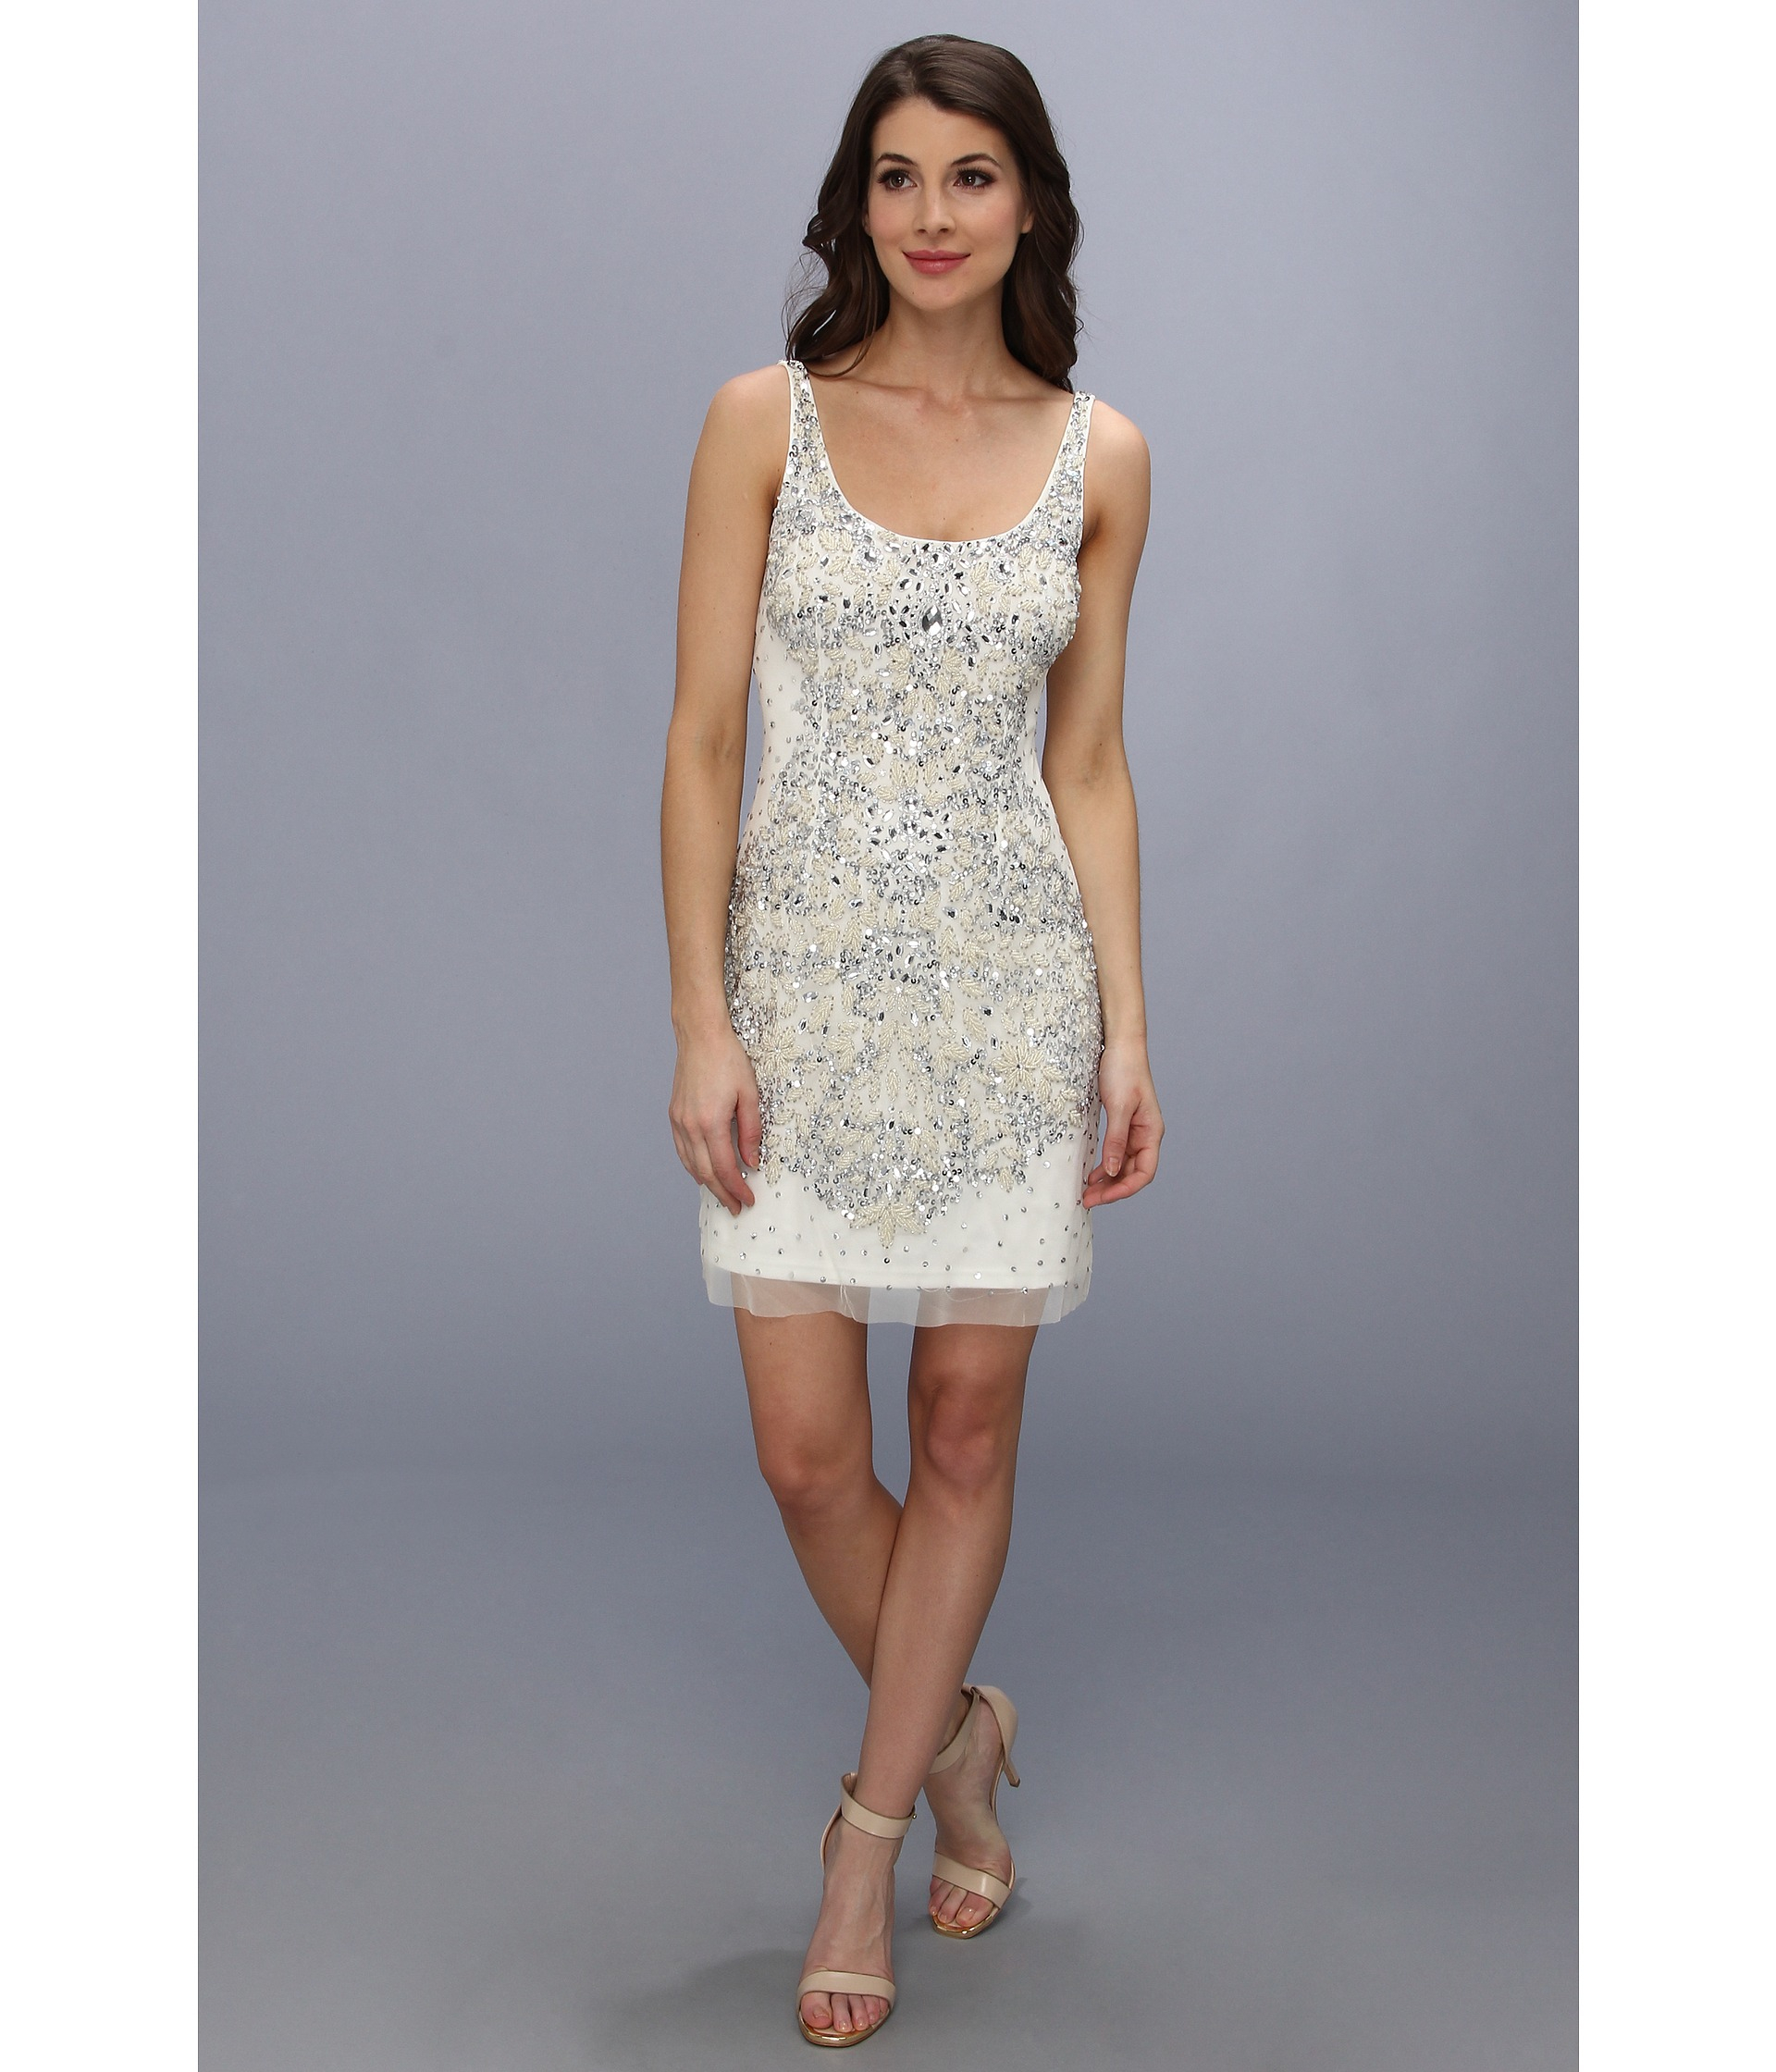 82eeed2272 Adrianna Papell Short Bead Tank Dress in White - Lyst